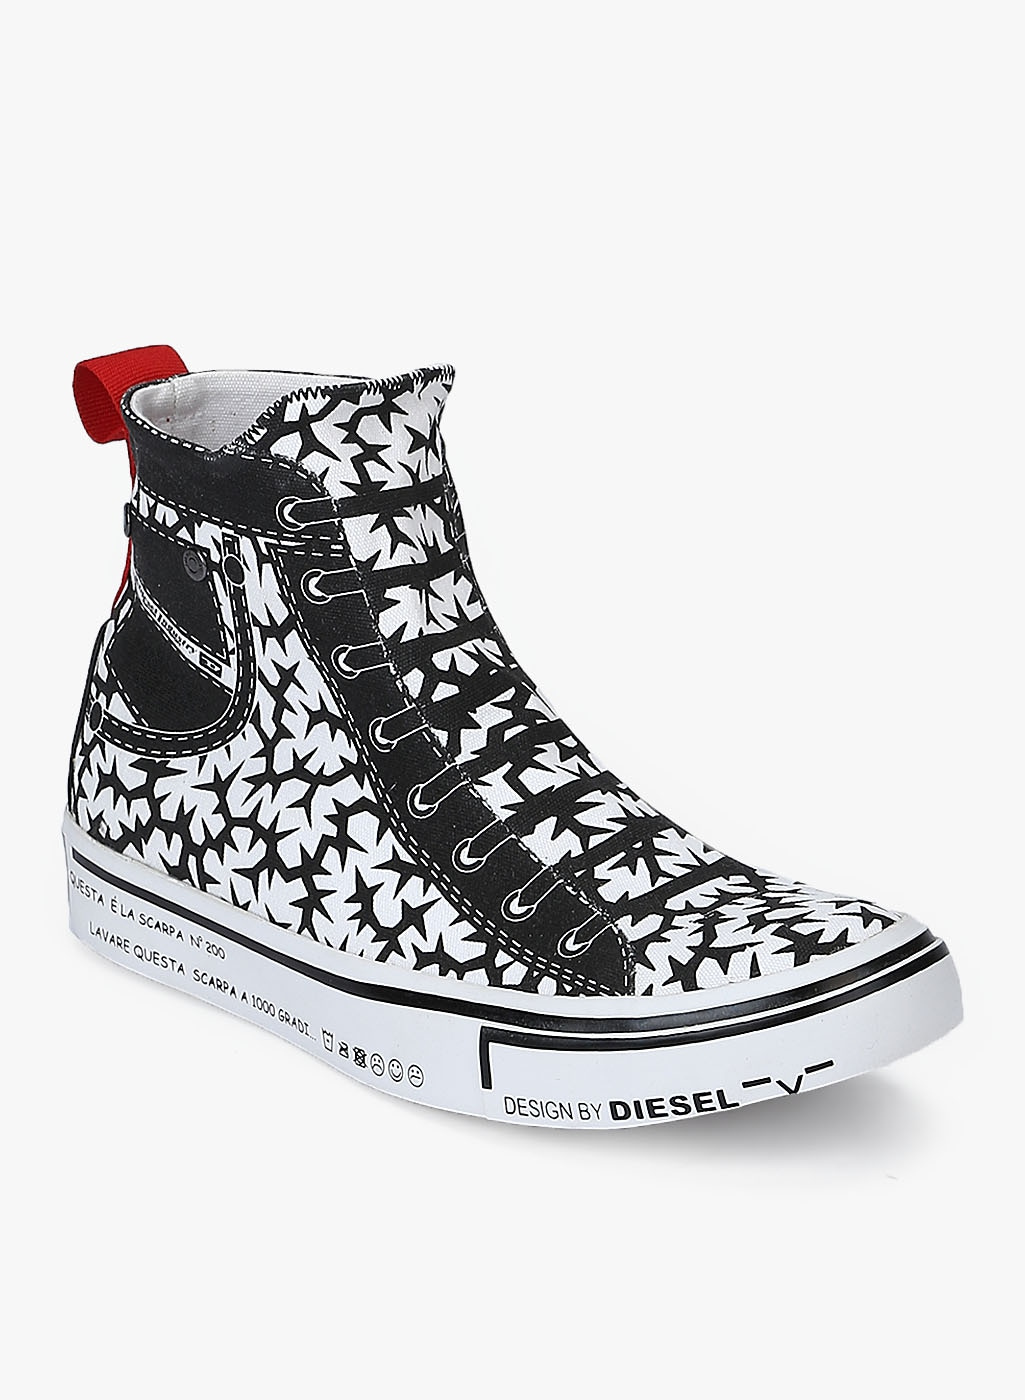 2b0de3f7ac40fe High Top Shoes - Buy High Top Shoes online in India